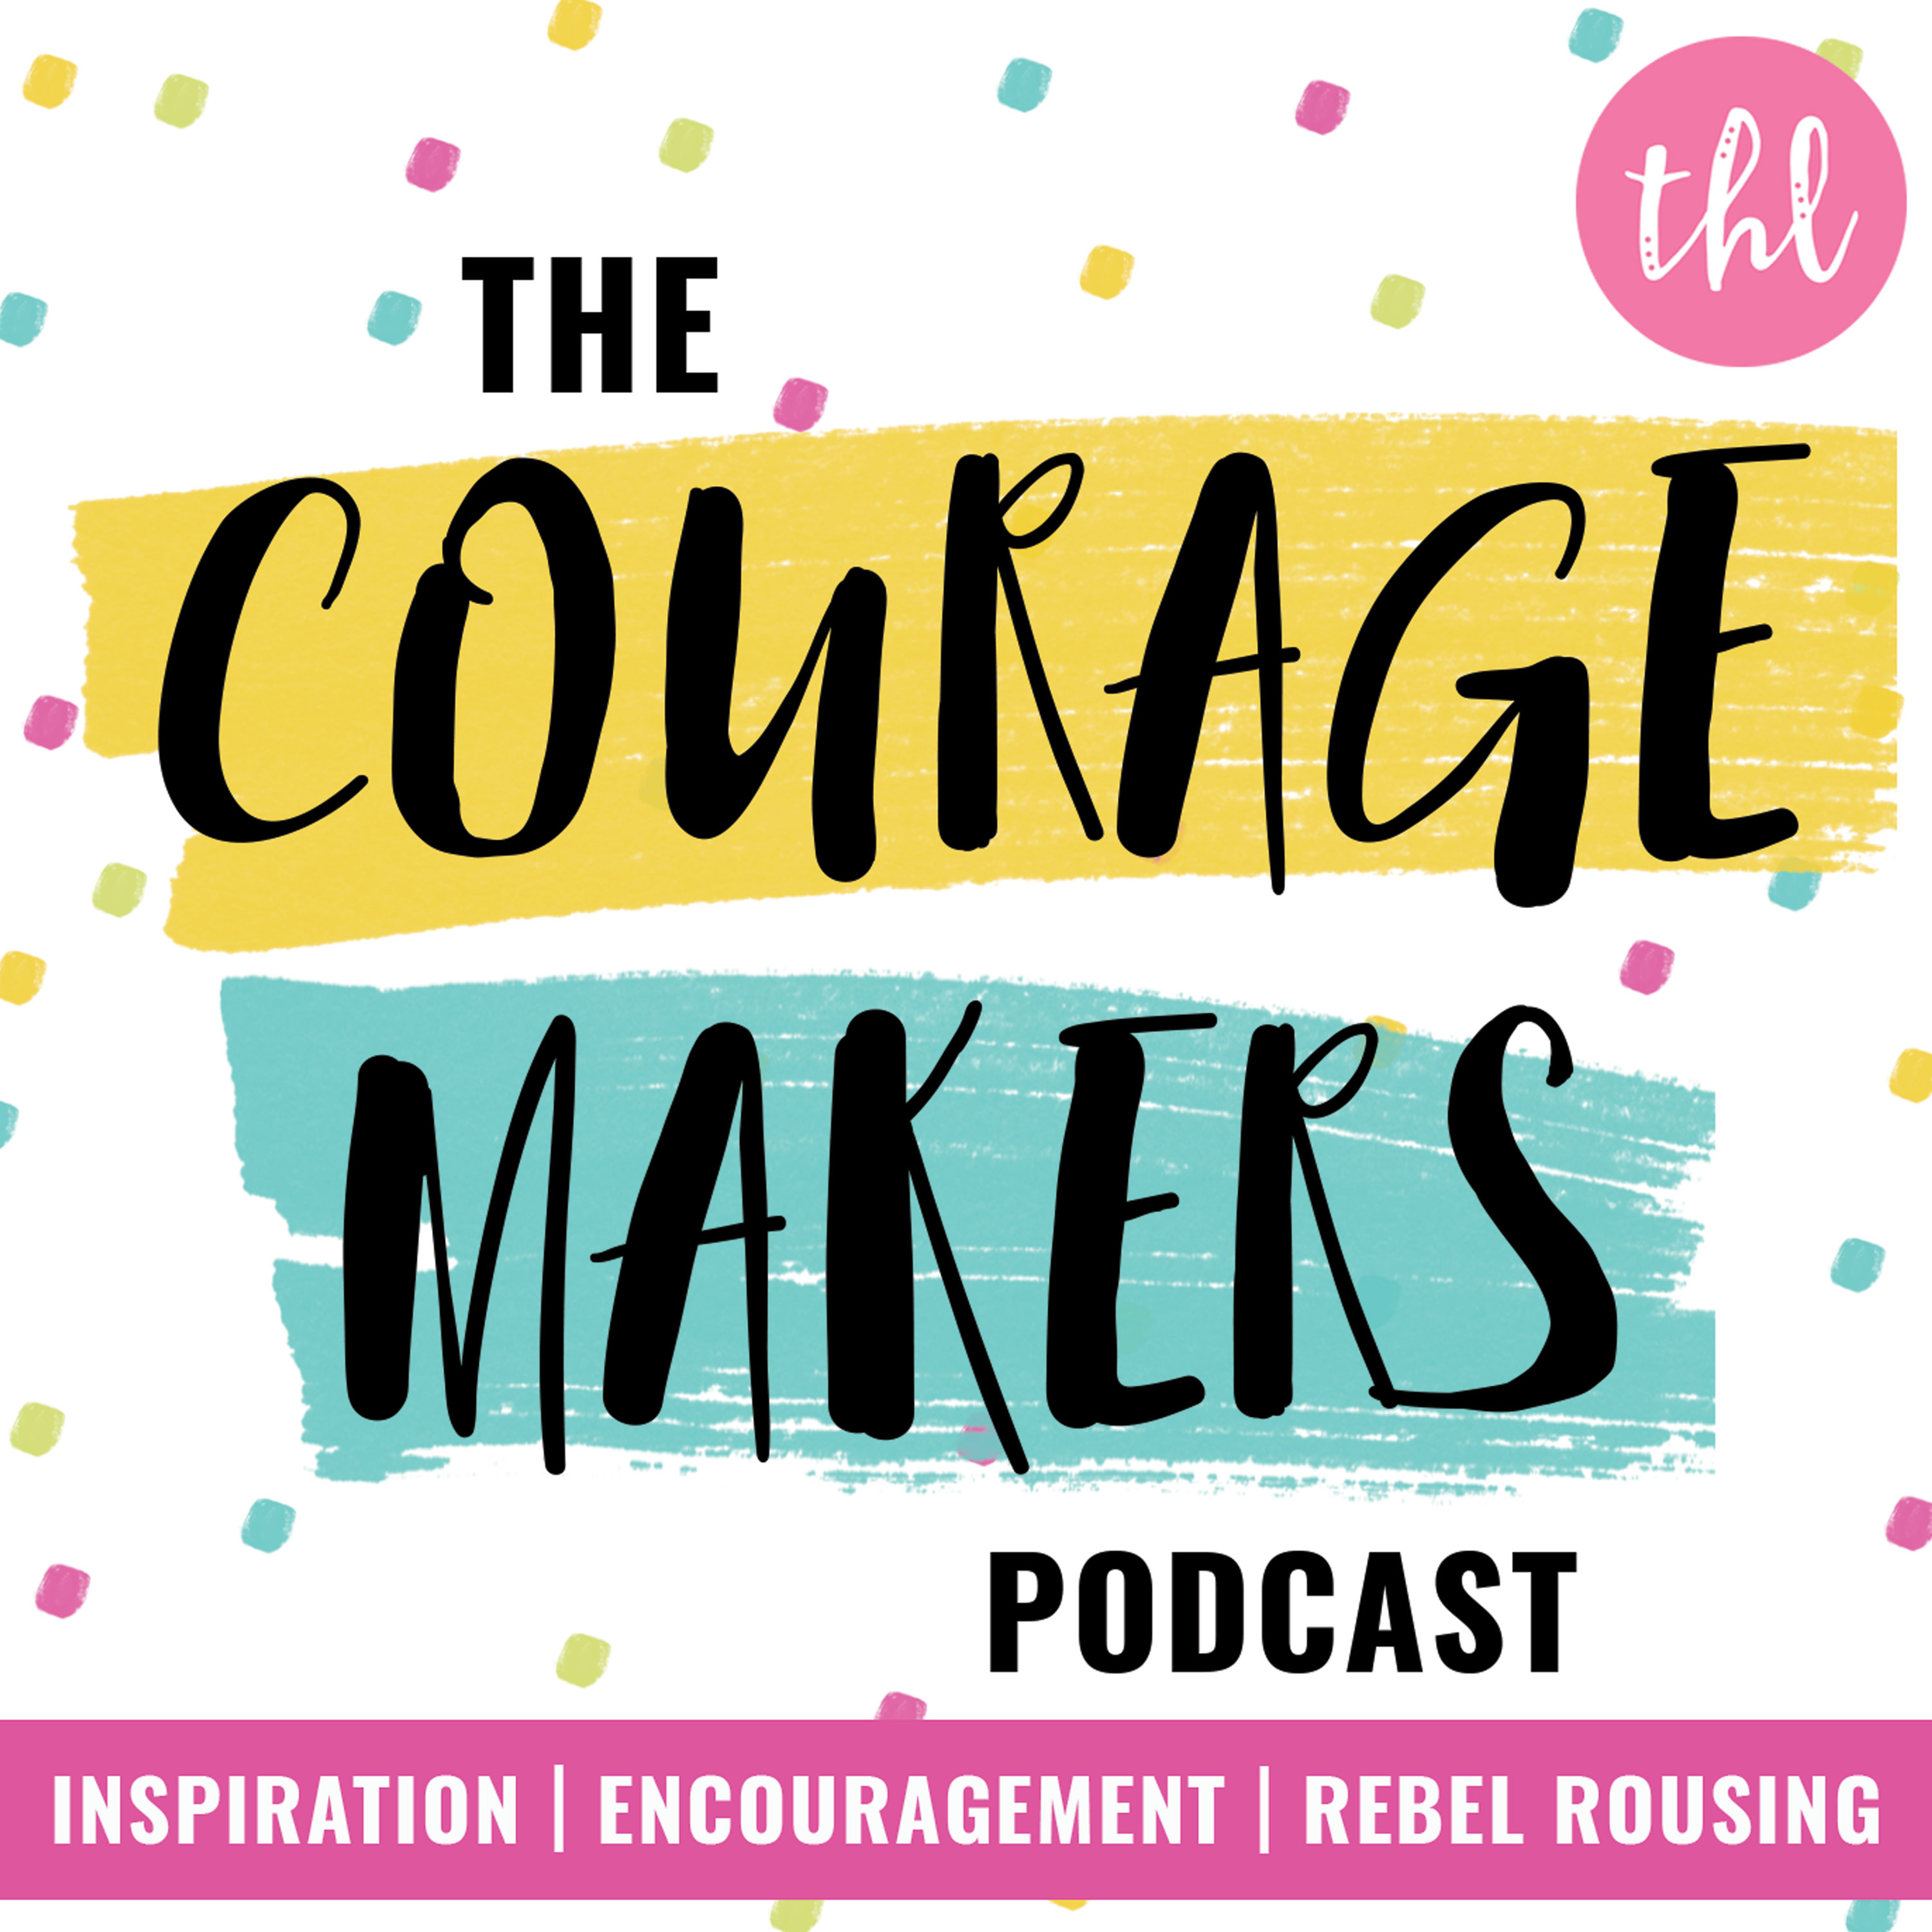 The Couragemakers Podcast   Encouragement, Inspiration & Rebel Rousing for Mission Driven Doers, Makers & Shakers   show art